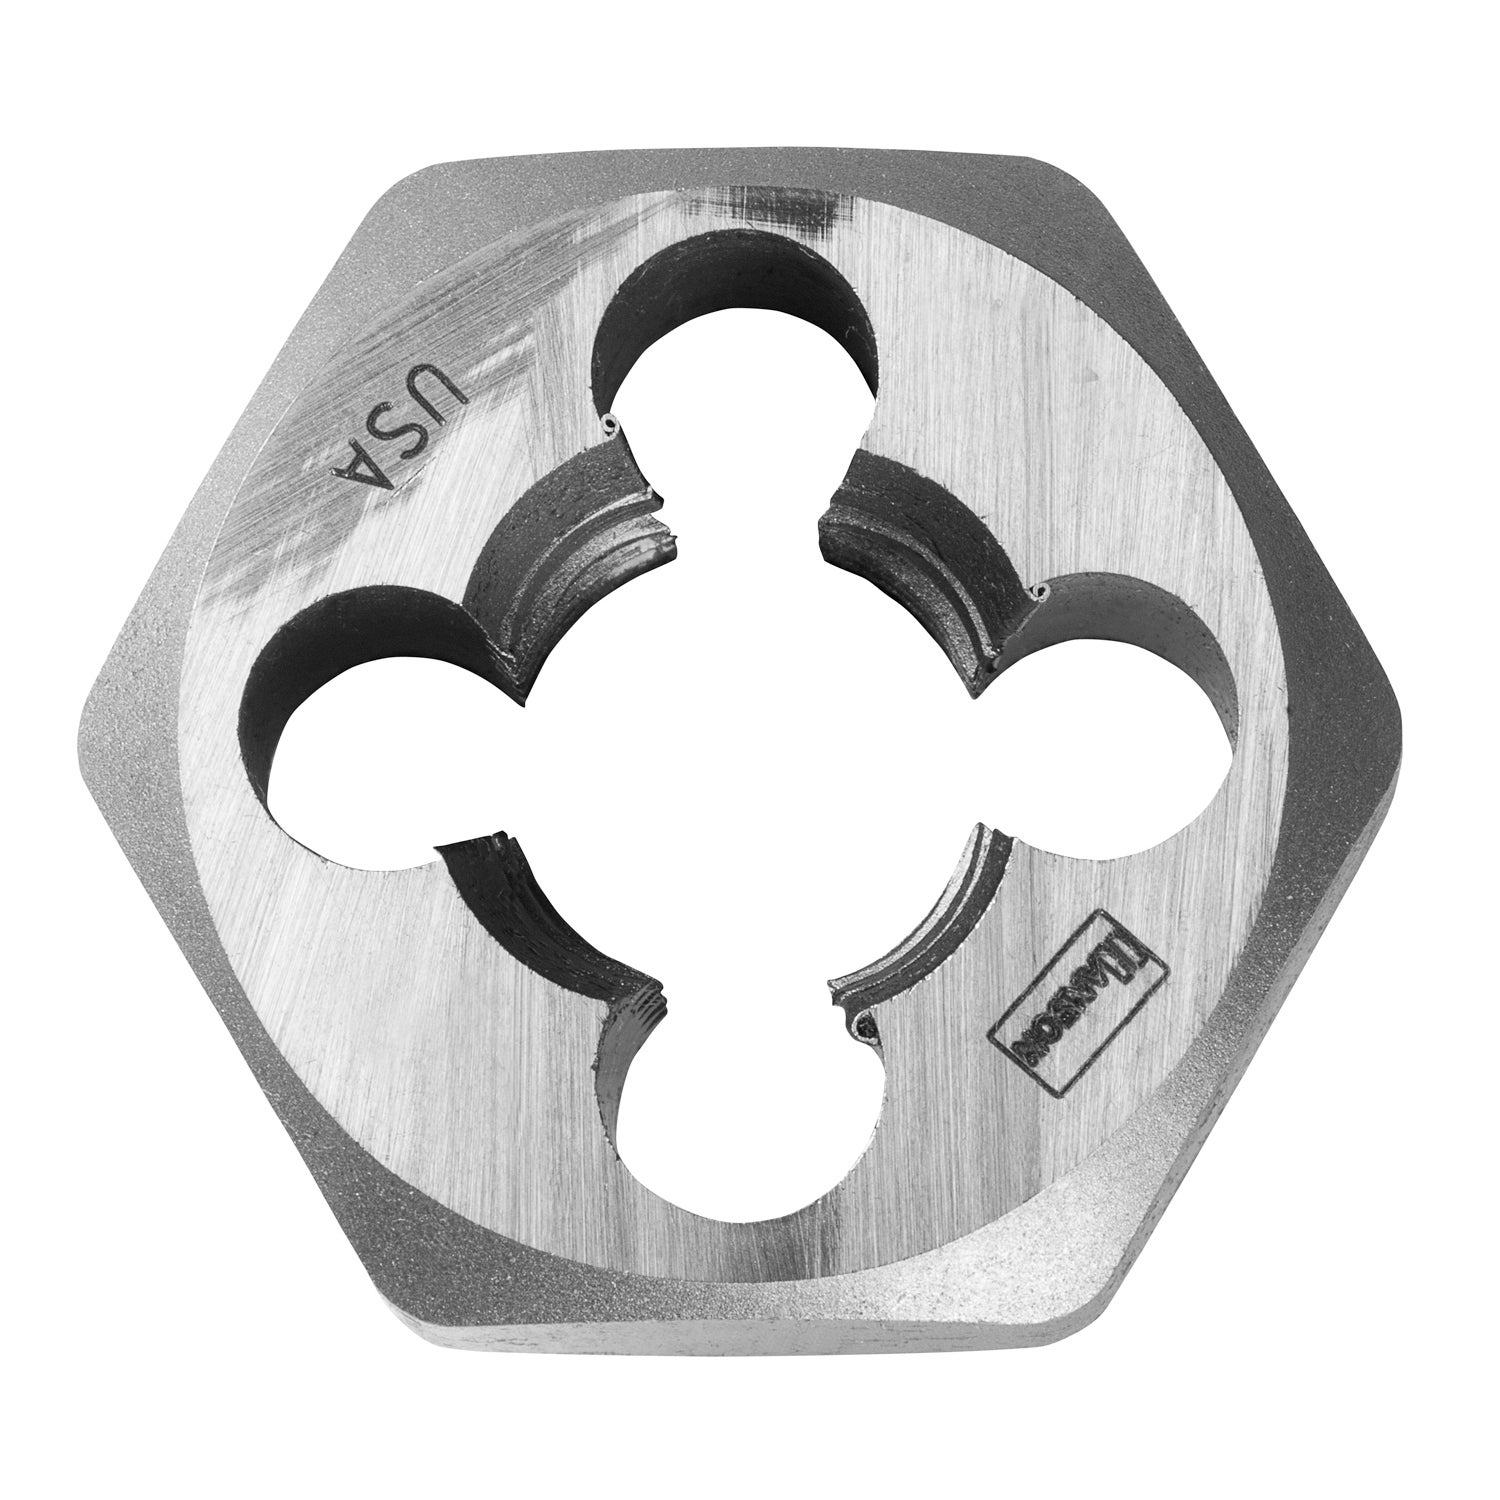 """High Carbon Steel 7mm x 1.00 Carded 1/"""" Across the Flat Irwin 9731 Hex Die"""